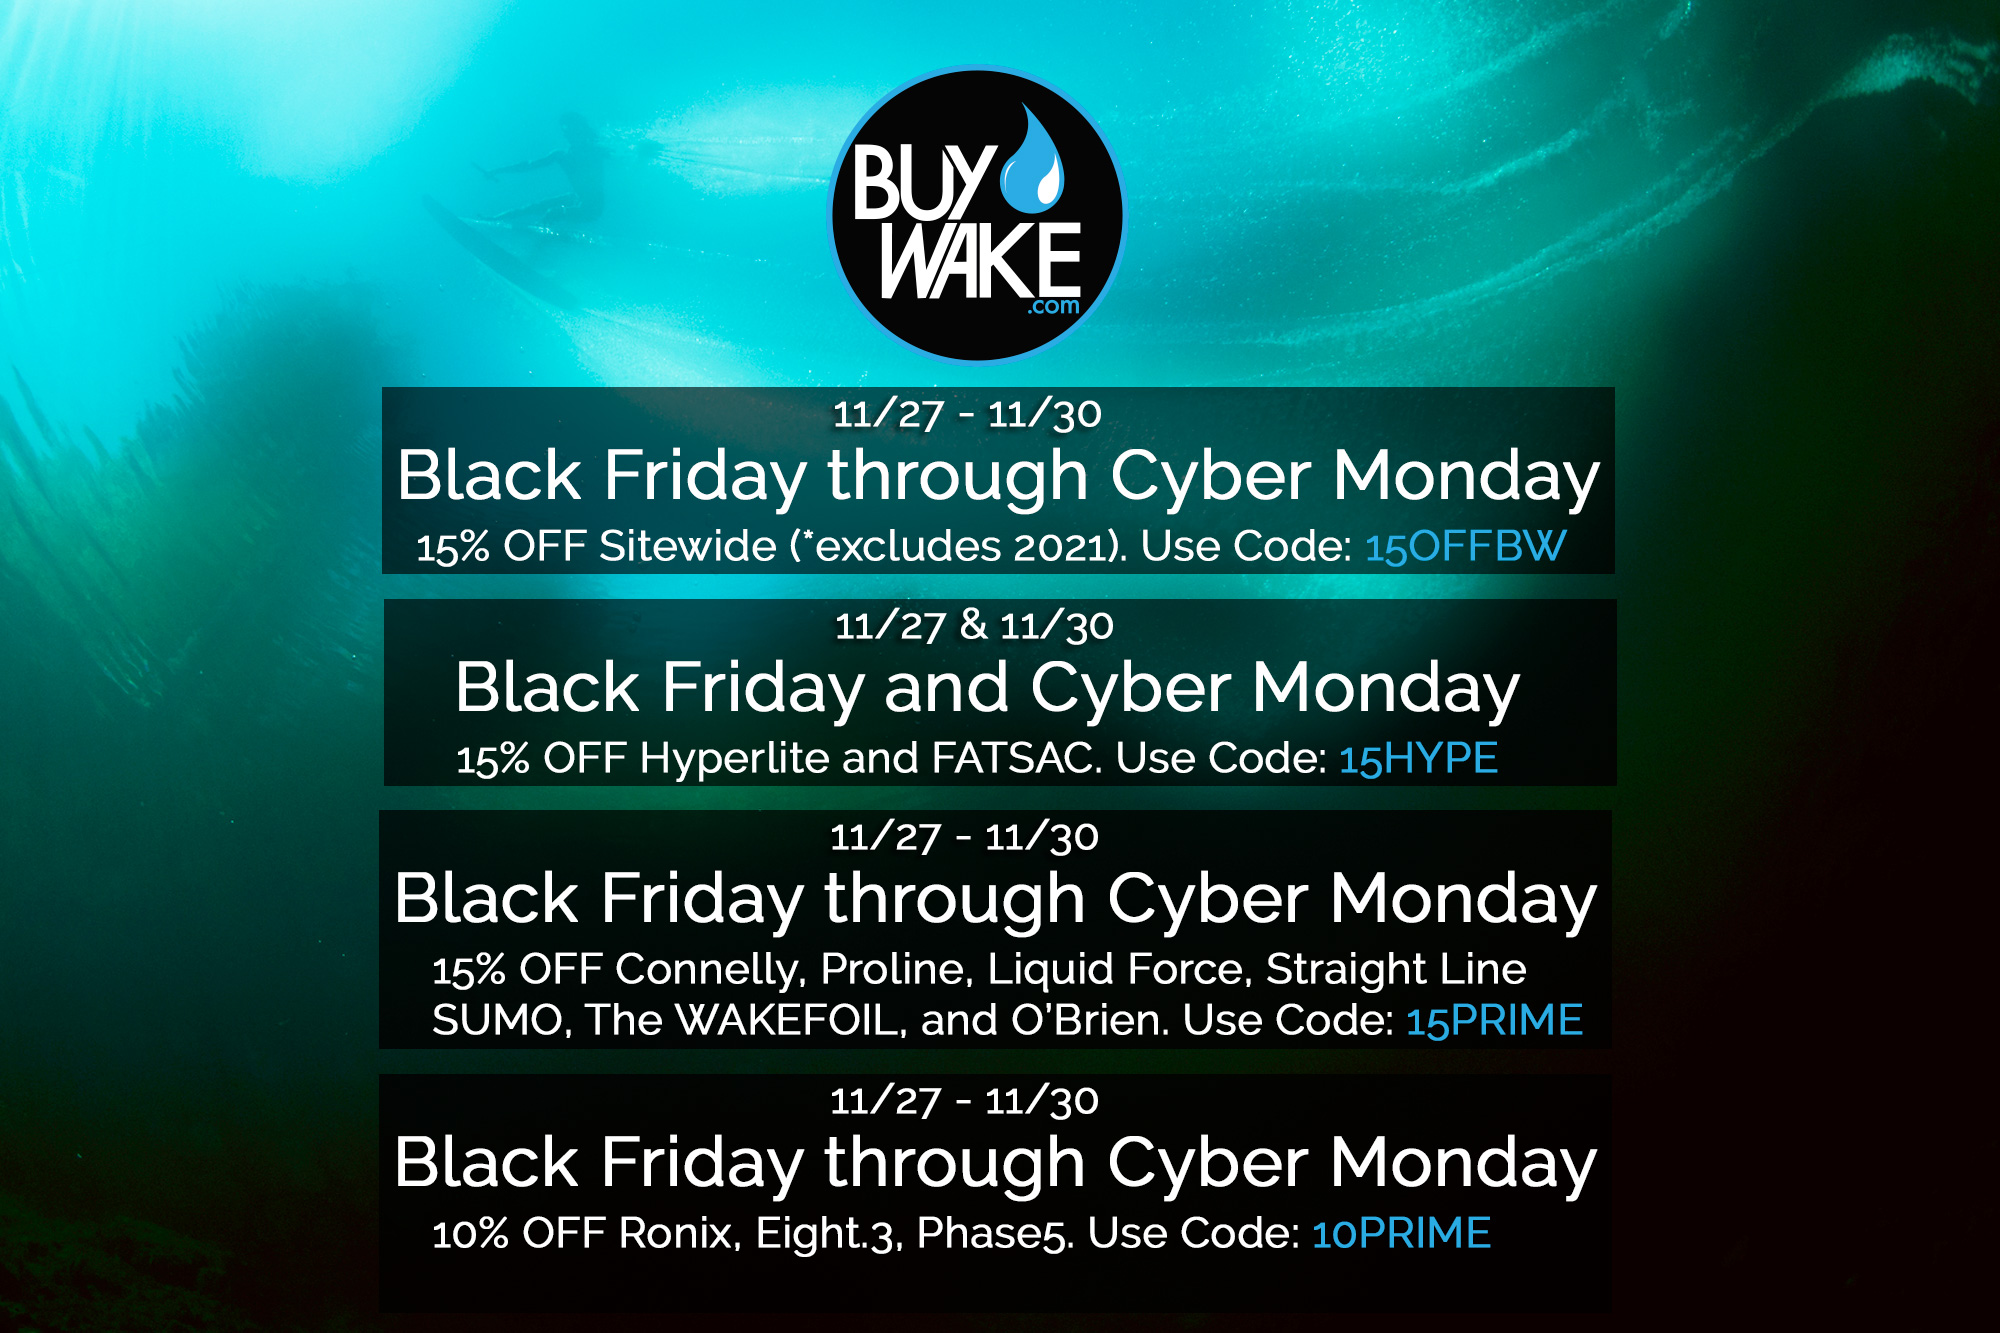 BuyWake.com Black Friday - Cyber Monday Sales | Save up to 15% Sitewide | Nov 27th-30th